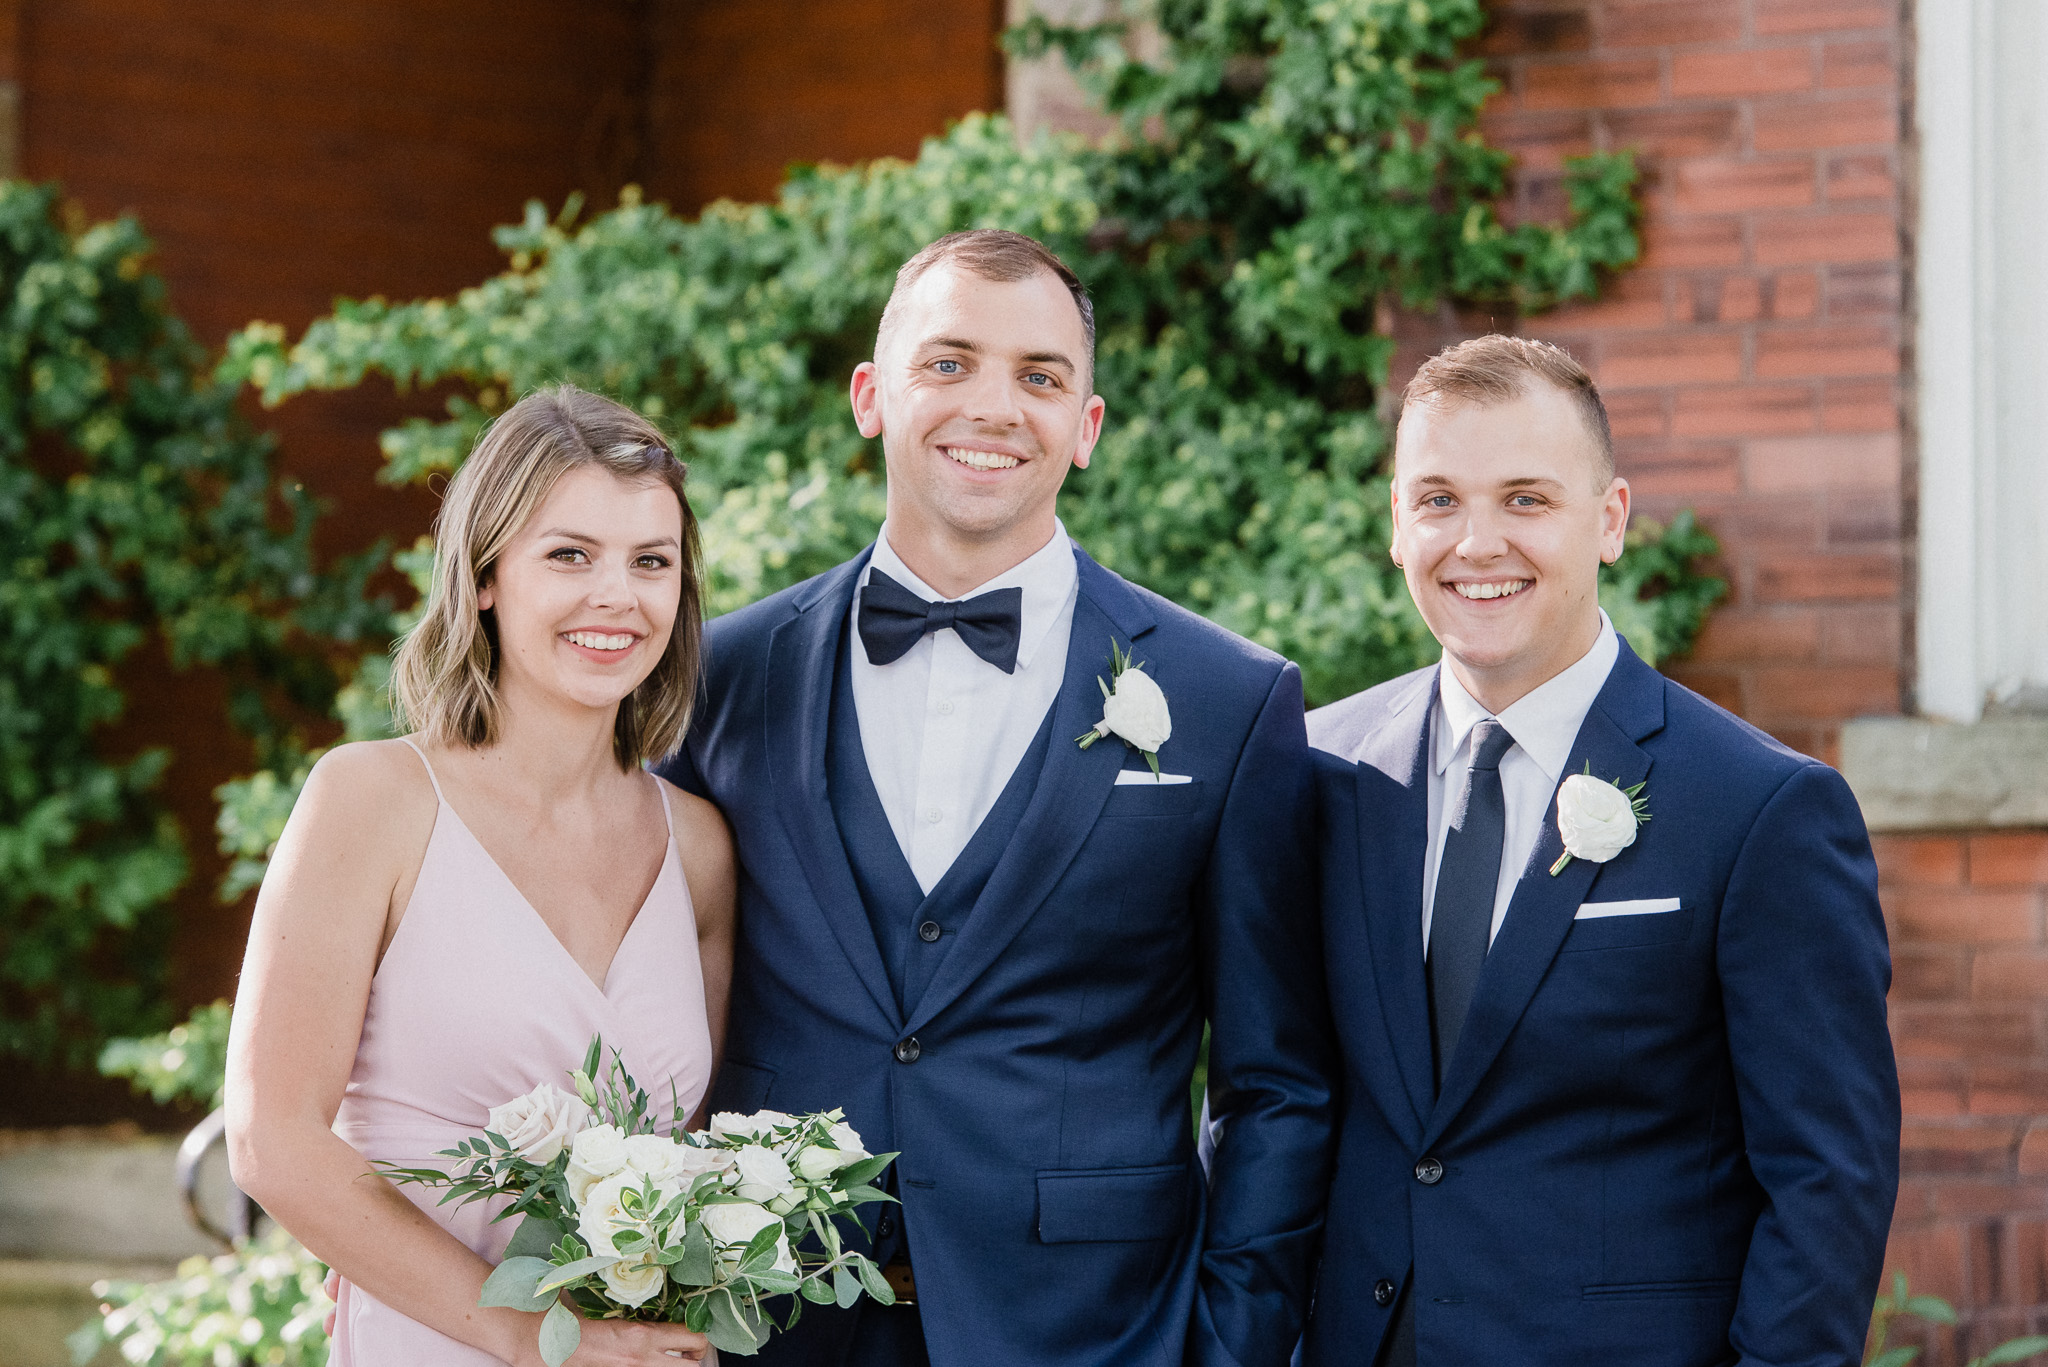 Honsberger Wedding | Jenn Kavanagh Photography